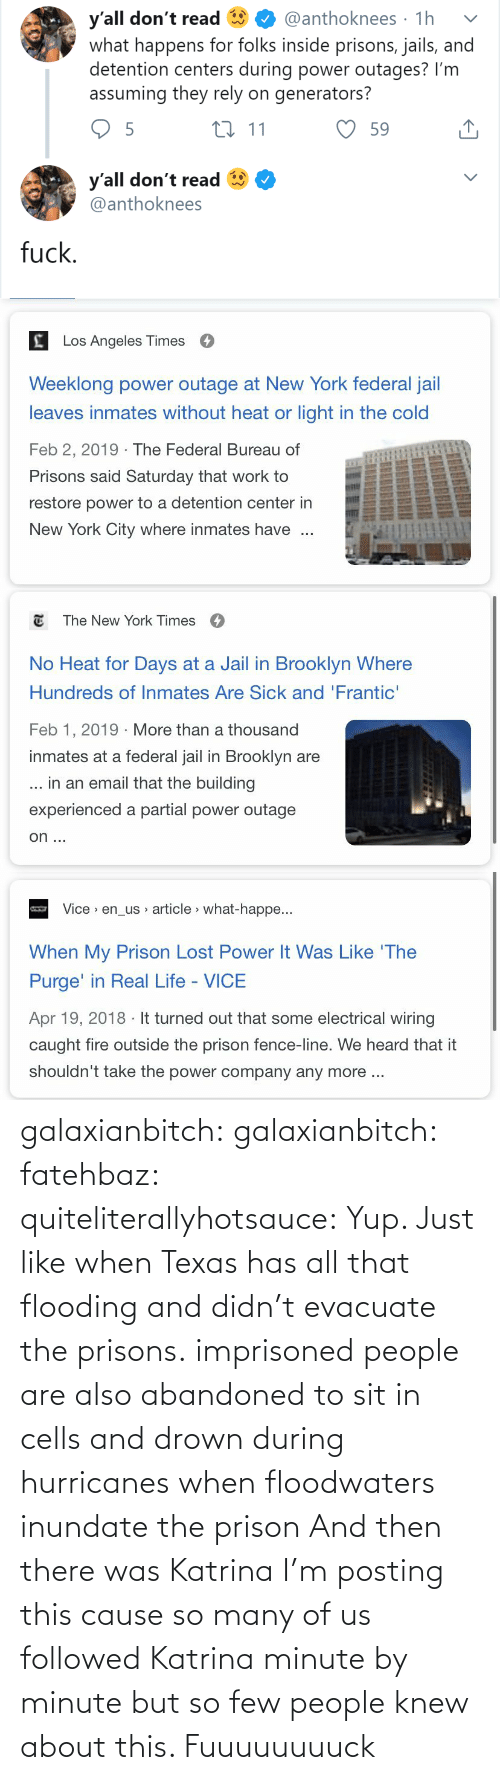 leaves: y'all don't read  what happens for folks inside prisons, jails, and  detention centers during power outages? I'm  assuming they rely on generators?  @anthoknees · 1h  27 11  59  y'all don't read  @anthoknees  fuck.   Los Angeles Times  Weeklong power outage at New York federal jail  leaves inmates without heat or light in the cold  Feb 2, 2019 · The Federal Bureau of  Prisons said Saturday that work to  restore power to a detention center in  New York City where inmates have   E The New York Times  O  No Heat for Days at a Jail in Brooklyn Where  Hundreds of Inmates Are Sick and 'Frantic'  Feb 1, 2019 · More than a thousand  inmates at a federal jail in Brooklyn are  ... in an email that the building  experienced a partial power outage  on ...   Vice > en_us article > what-happe...  When My Prison Lost Power It Was Like 'The  Purge' in Real Life - VICE  Apr 19, 2018 · It turned out that some electrical wiring  caught fire outside the prison fence-line. We heard that it  shouldn't take the power company any more .. galaxianbitch: galaxianbitch:   fatehbaz:  quiteliterallyhotsauce:   Yup. Just like when Texas has all that flooding and didn't evacuate the prisons.   imprisoned people are also abandoned to sit in cells and drown during hurricanes when floodwaters inundate the prison   And then there was Katrina        I'm posting this cause so many of us followed Katrina minute by minute but so few people knew about this.    Fuuuuuuuuck